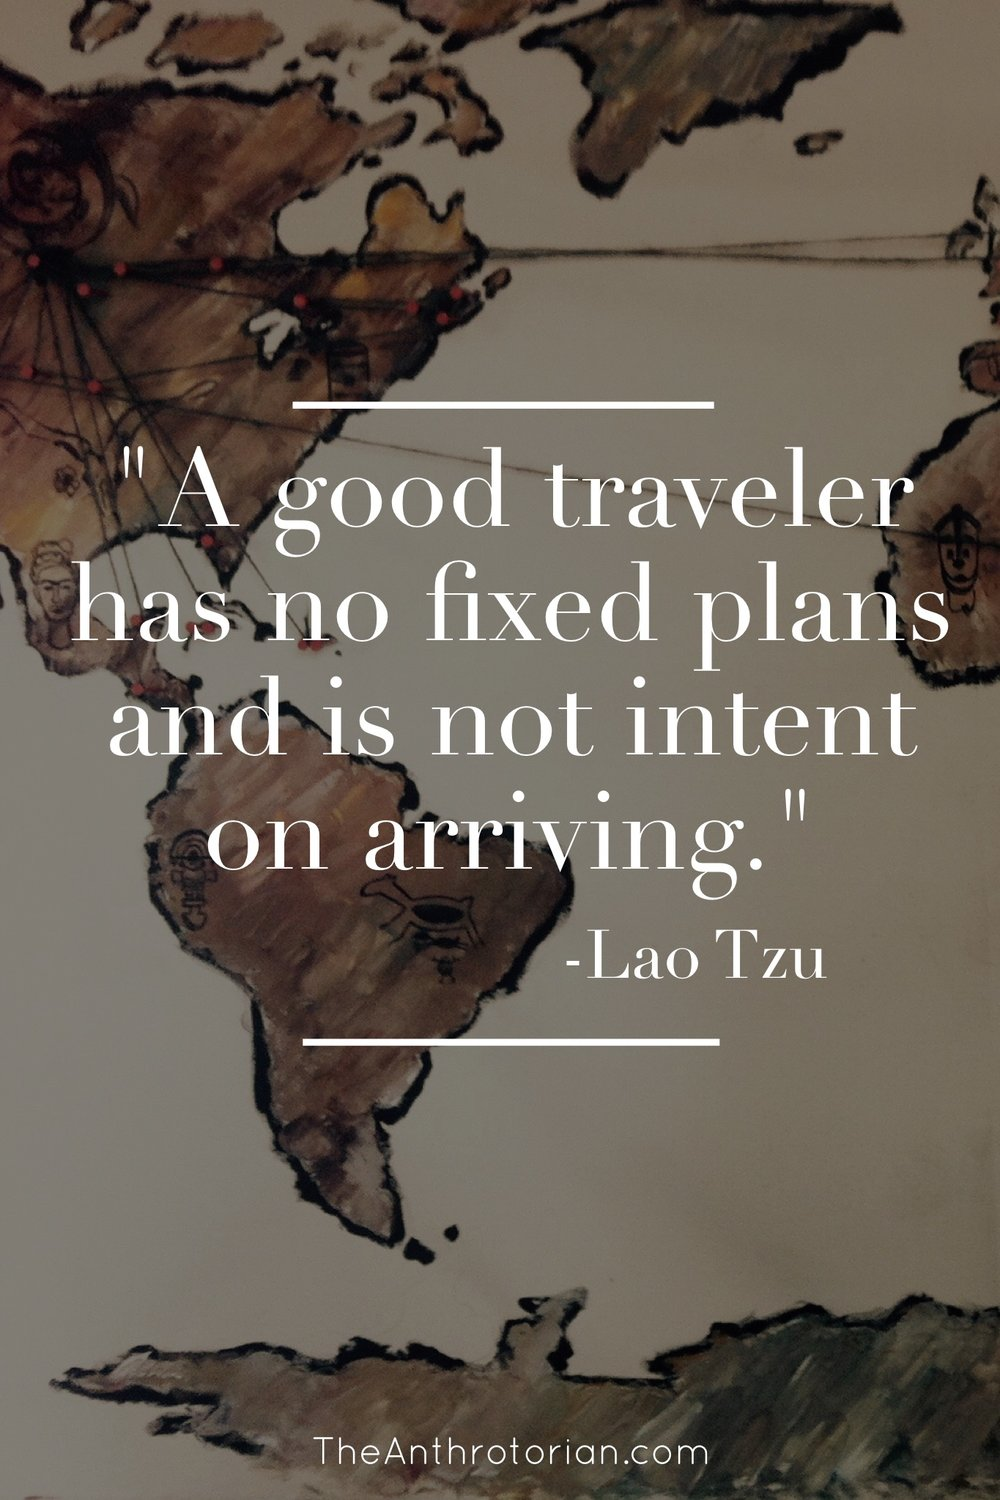 Travel Quotes: Sometimes You Just Need a Little Inspiration